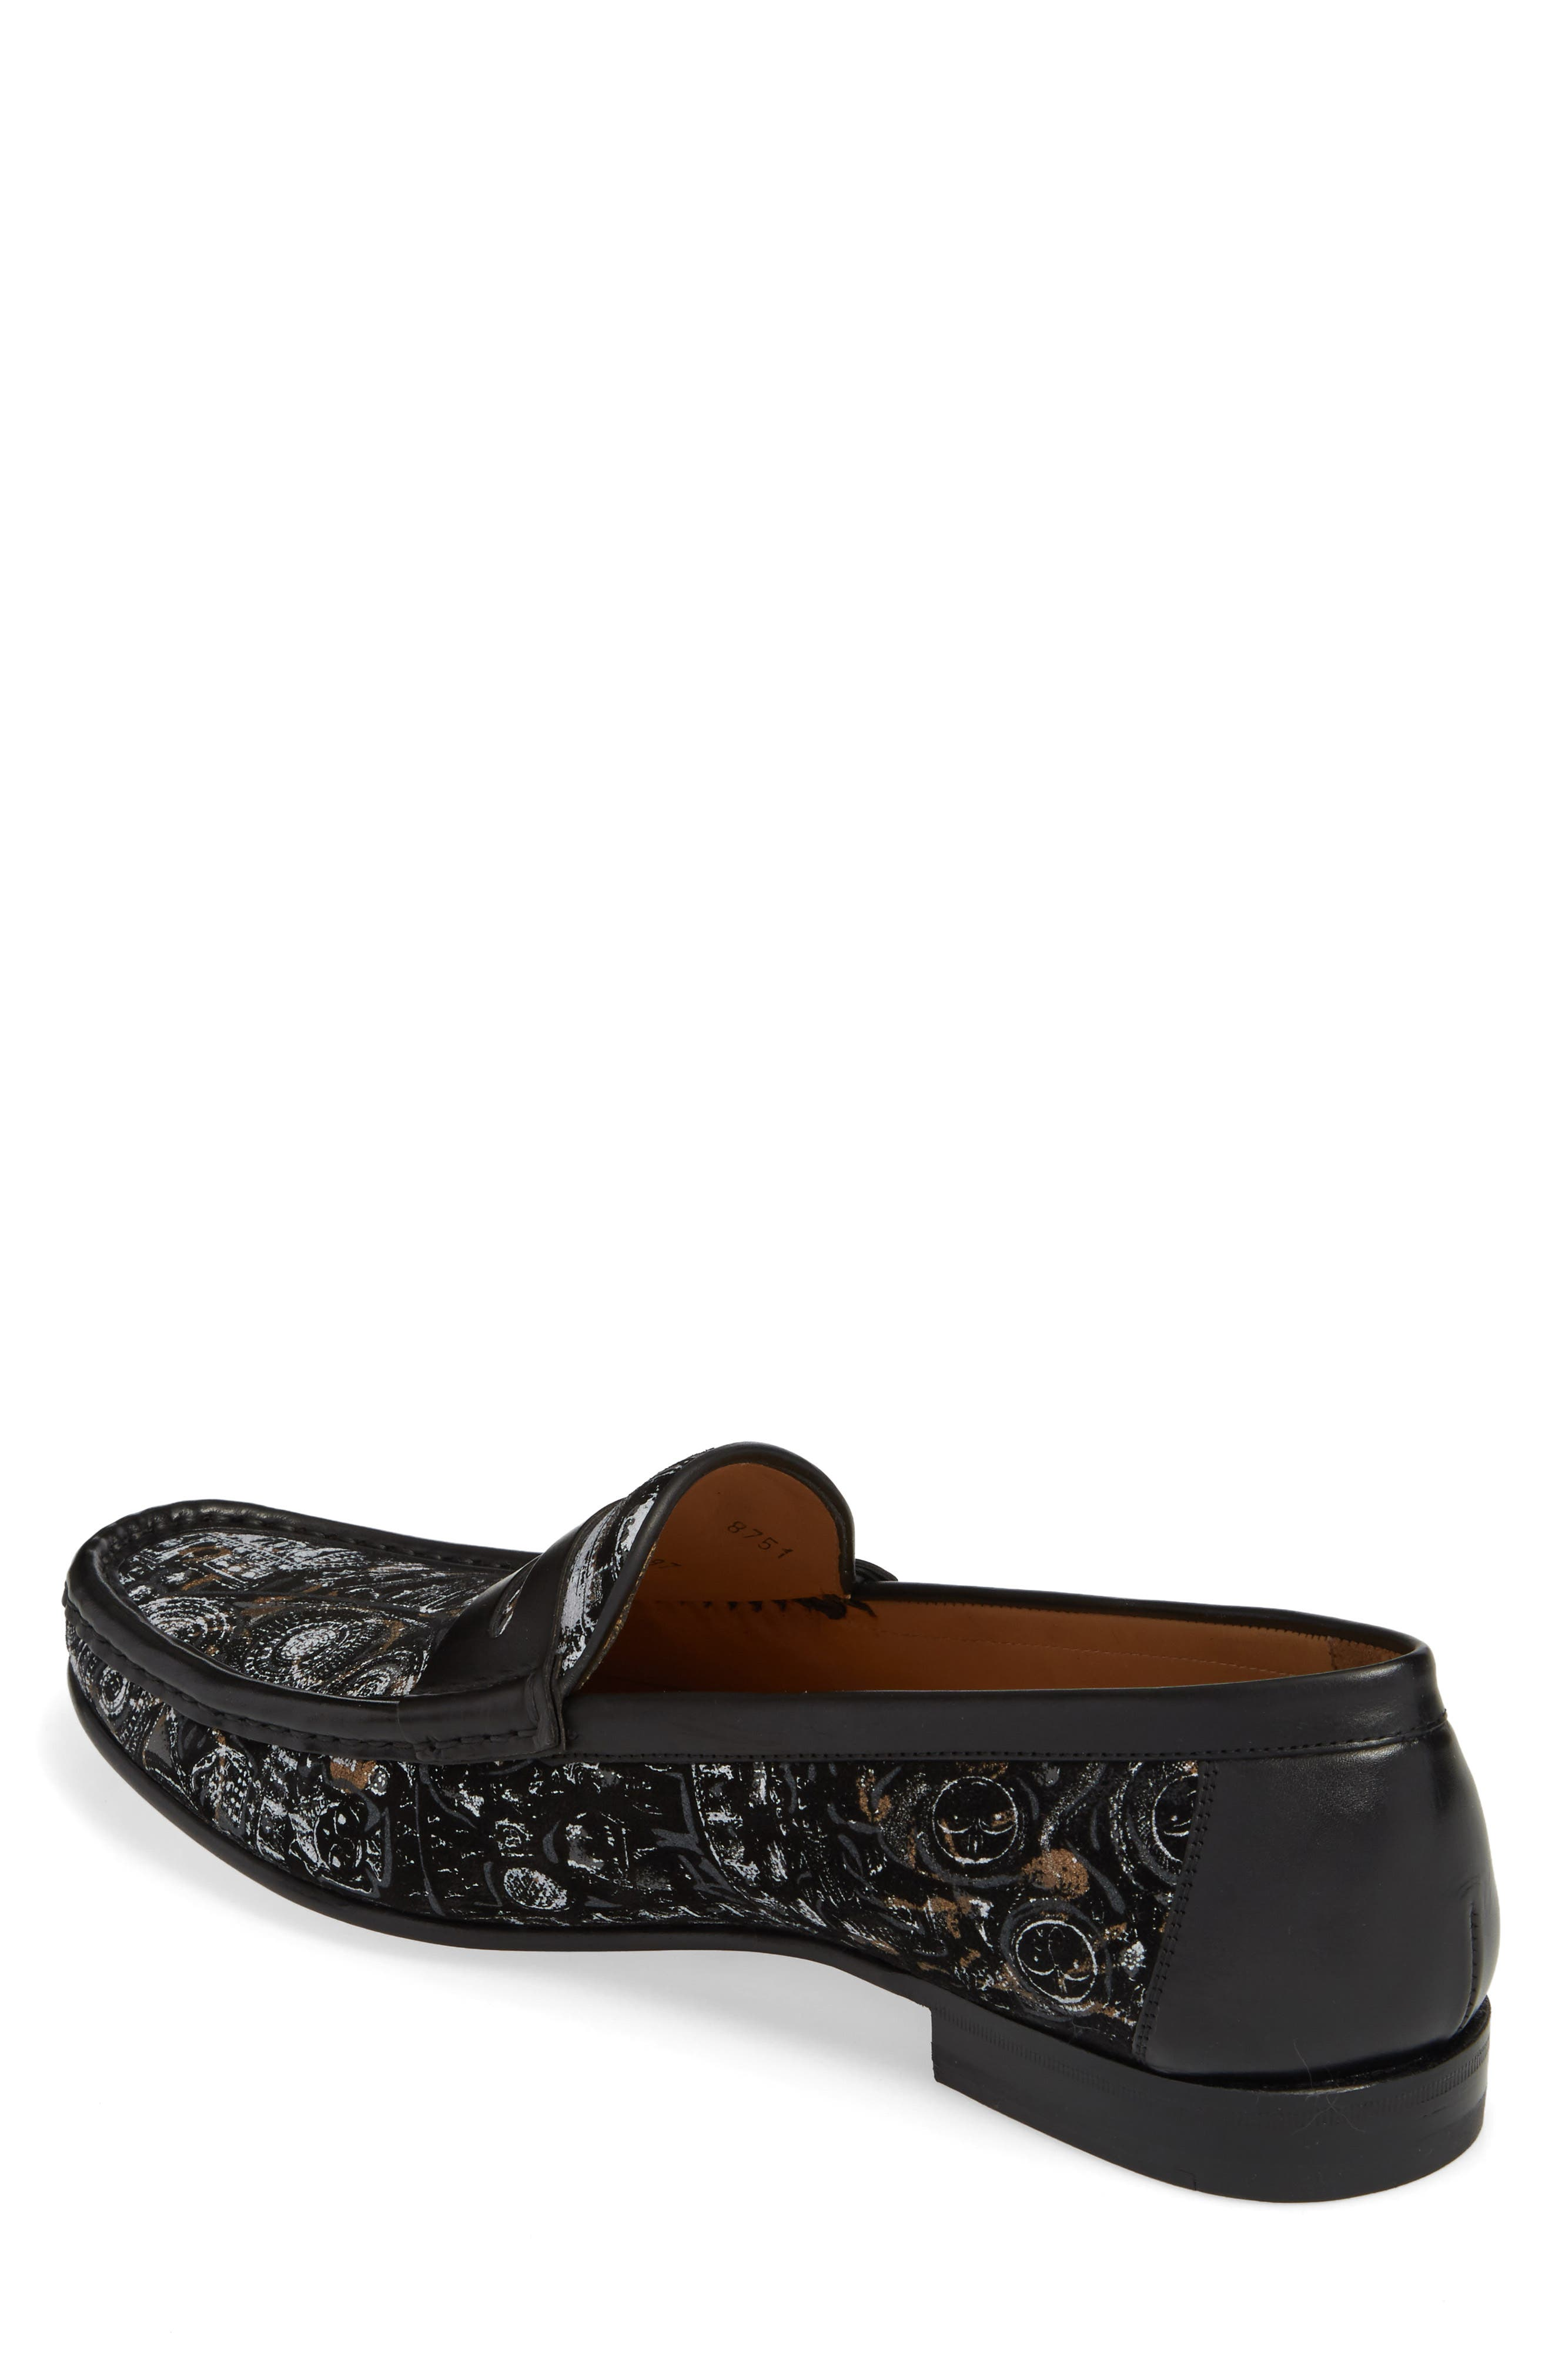 Laries II Penny Loafer,                             Alternate thumbnail 2, color,                             BLACK SUEDE/ LEATHER